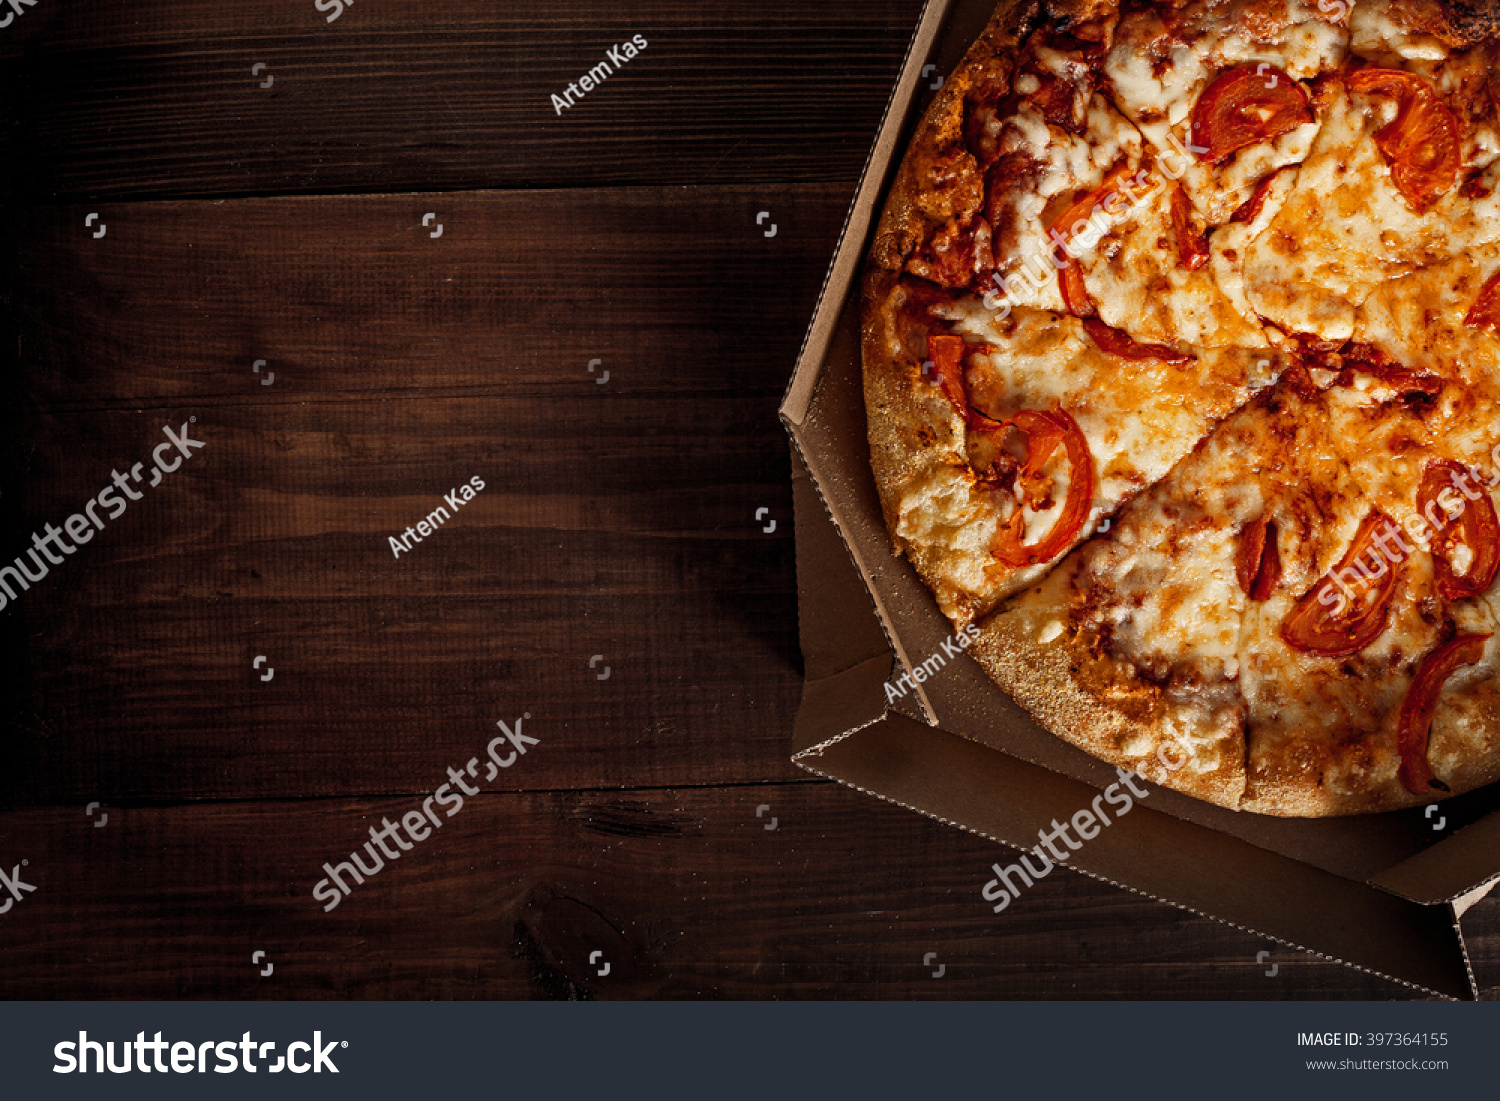 Pizza Delivery Box You Can Put Stock Photo 397364155